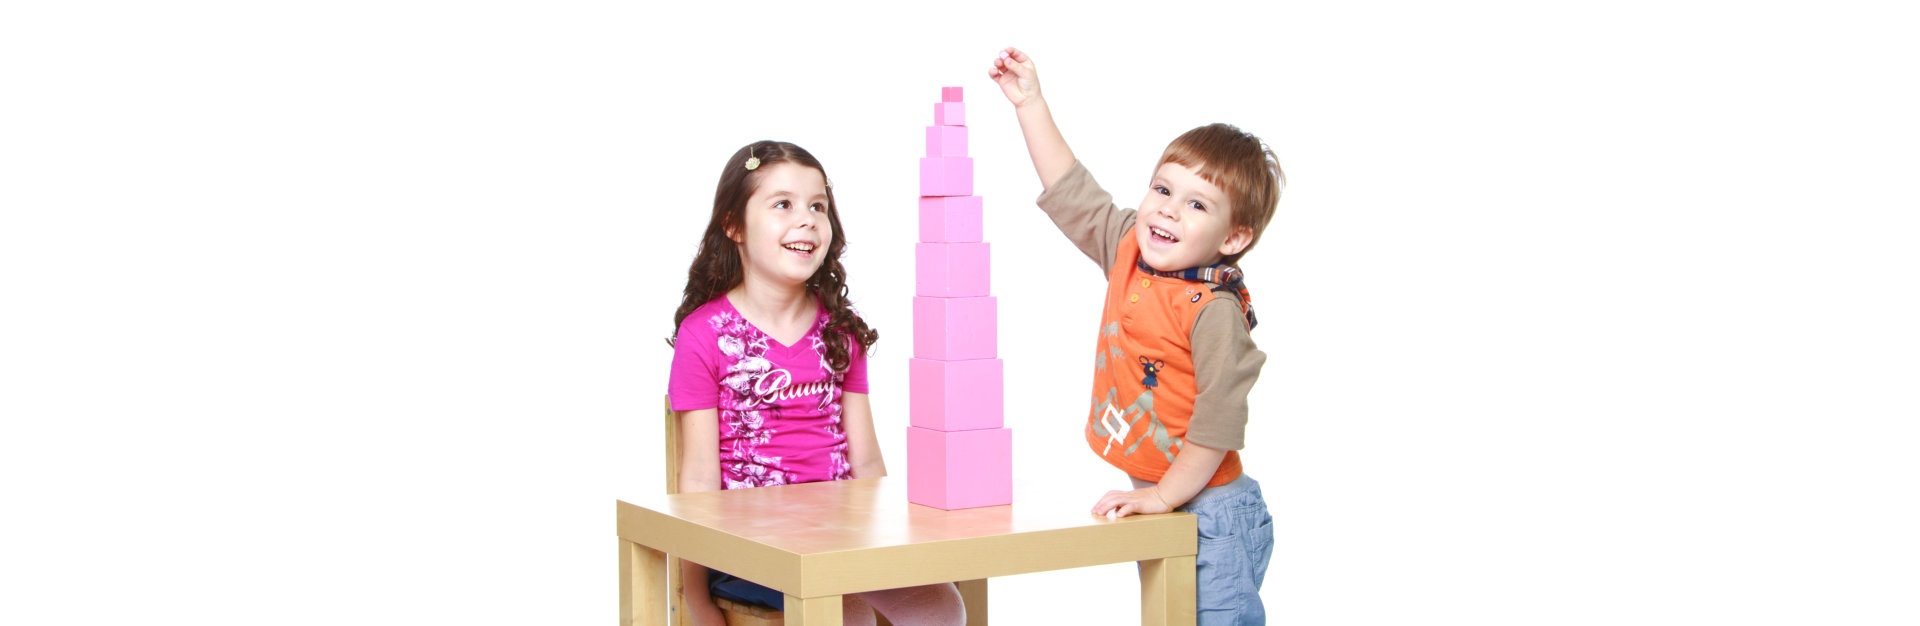 2 kids building pyramid